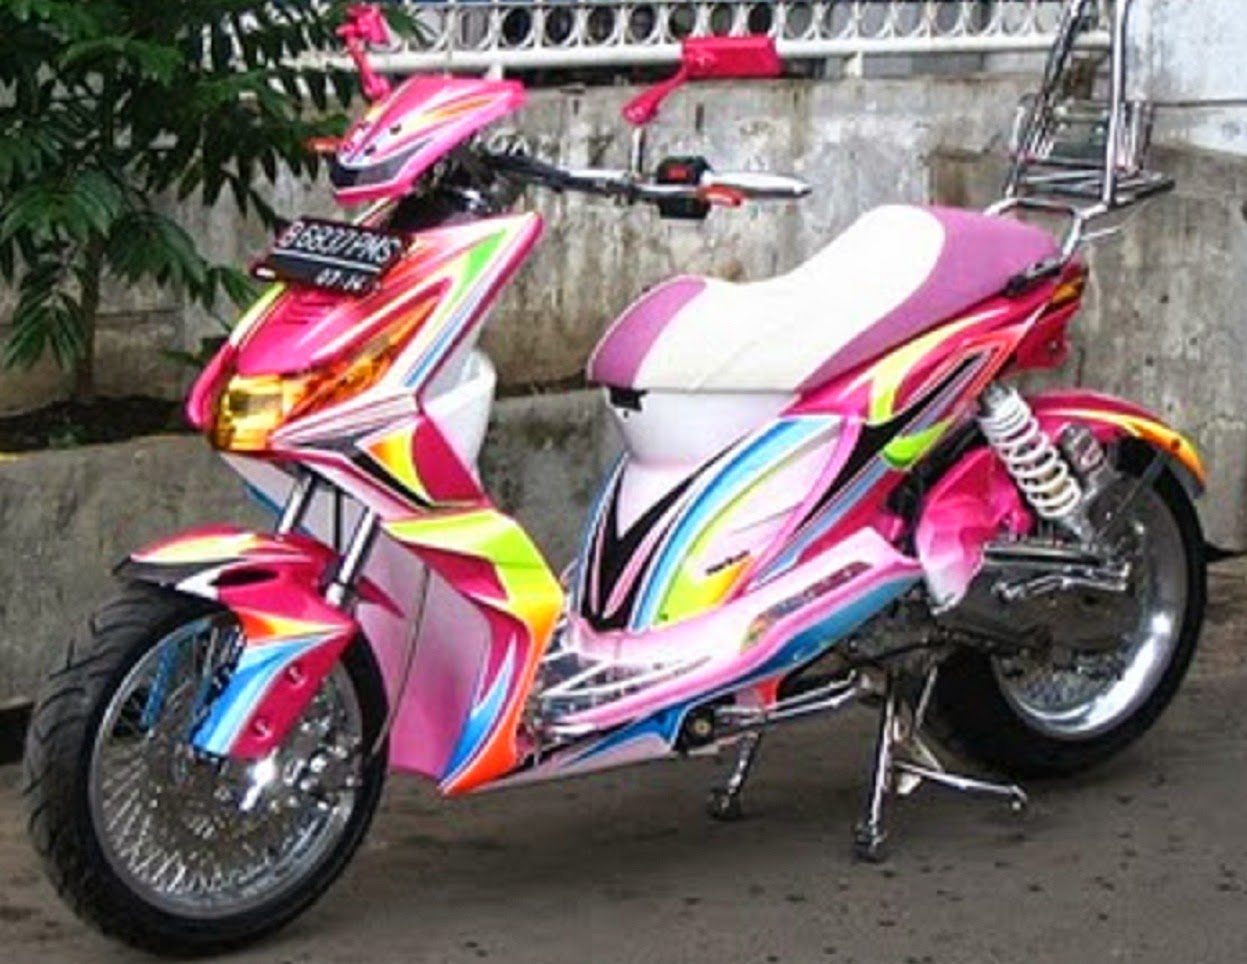 Modifikasi Motor Beat Sederhana Simple Airbrush Ala Thailand